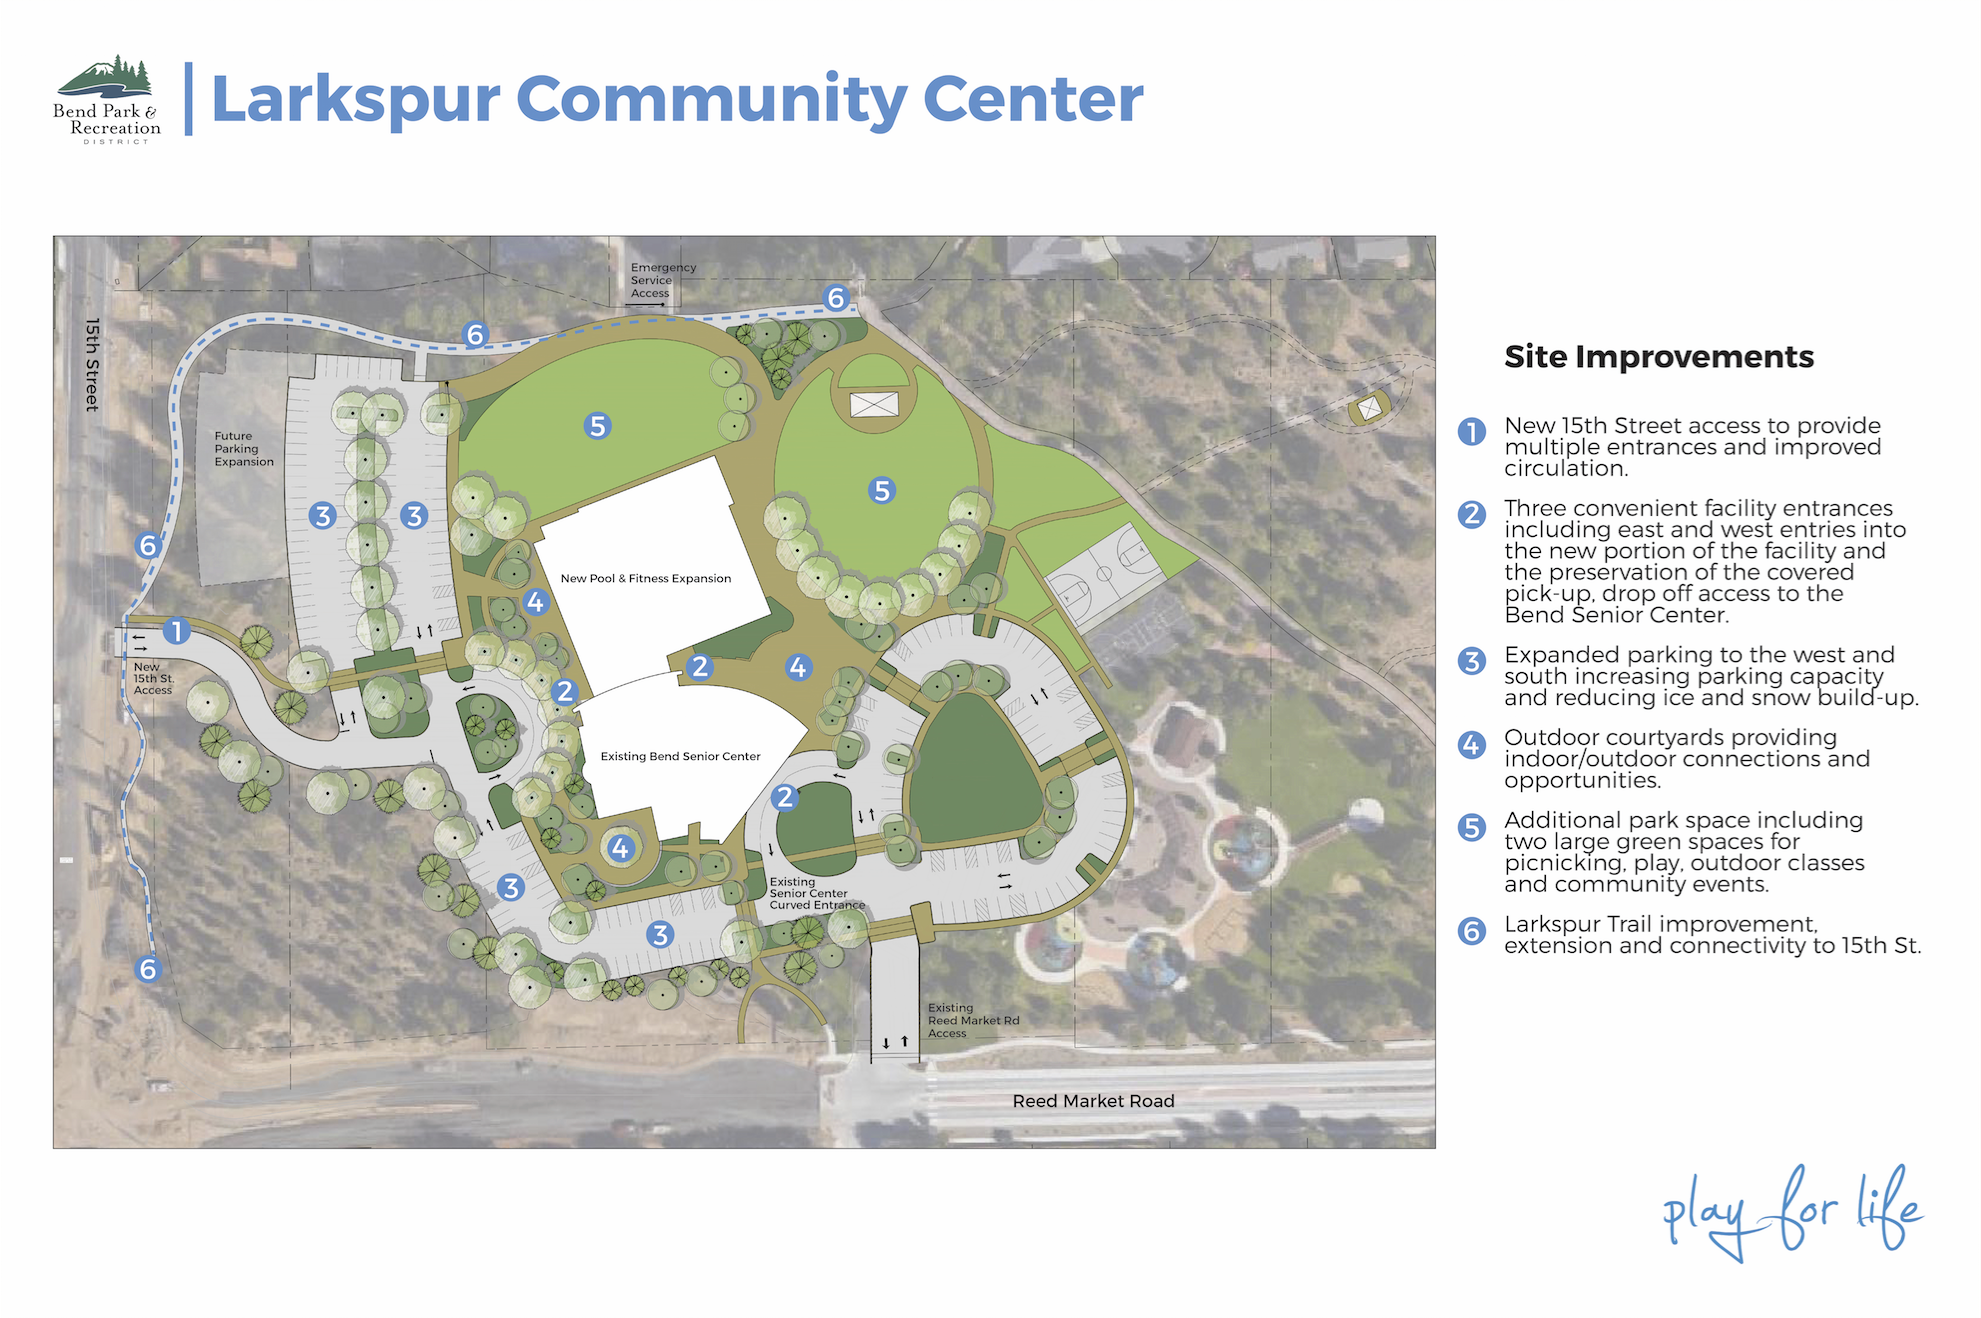 Larkspur Community Center Concept Site Plan